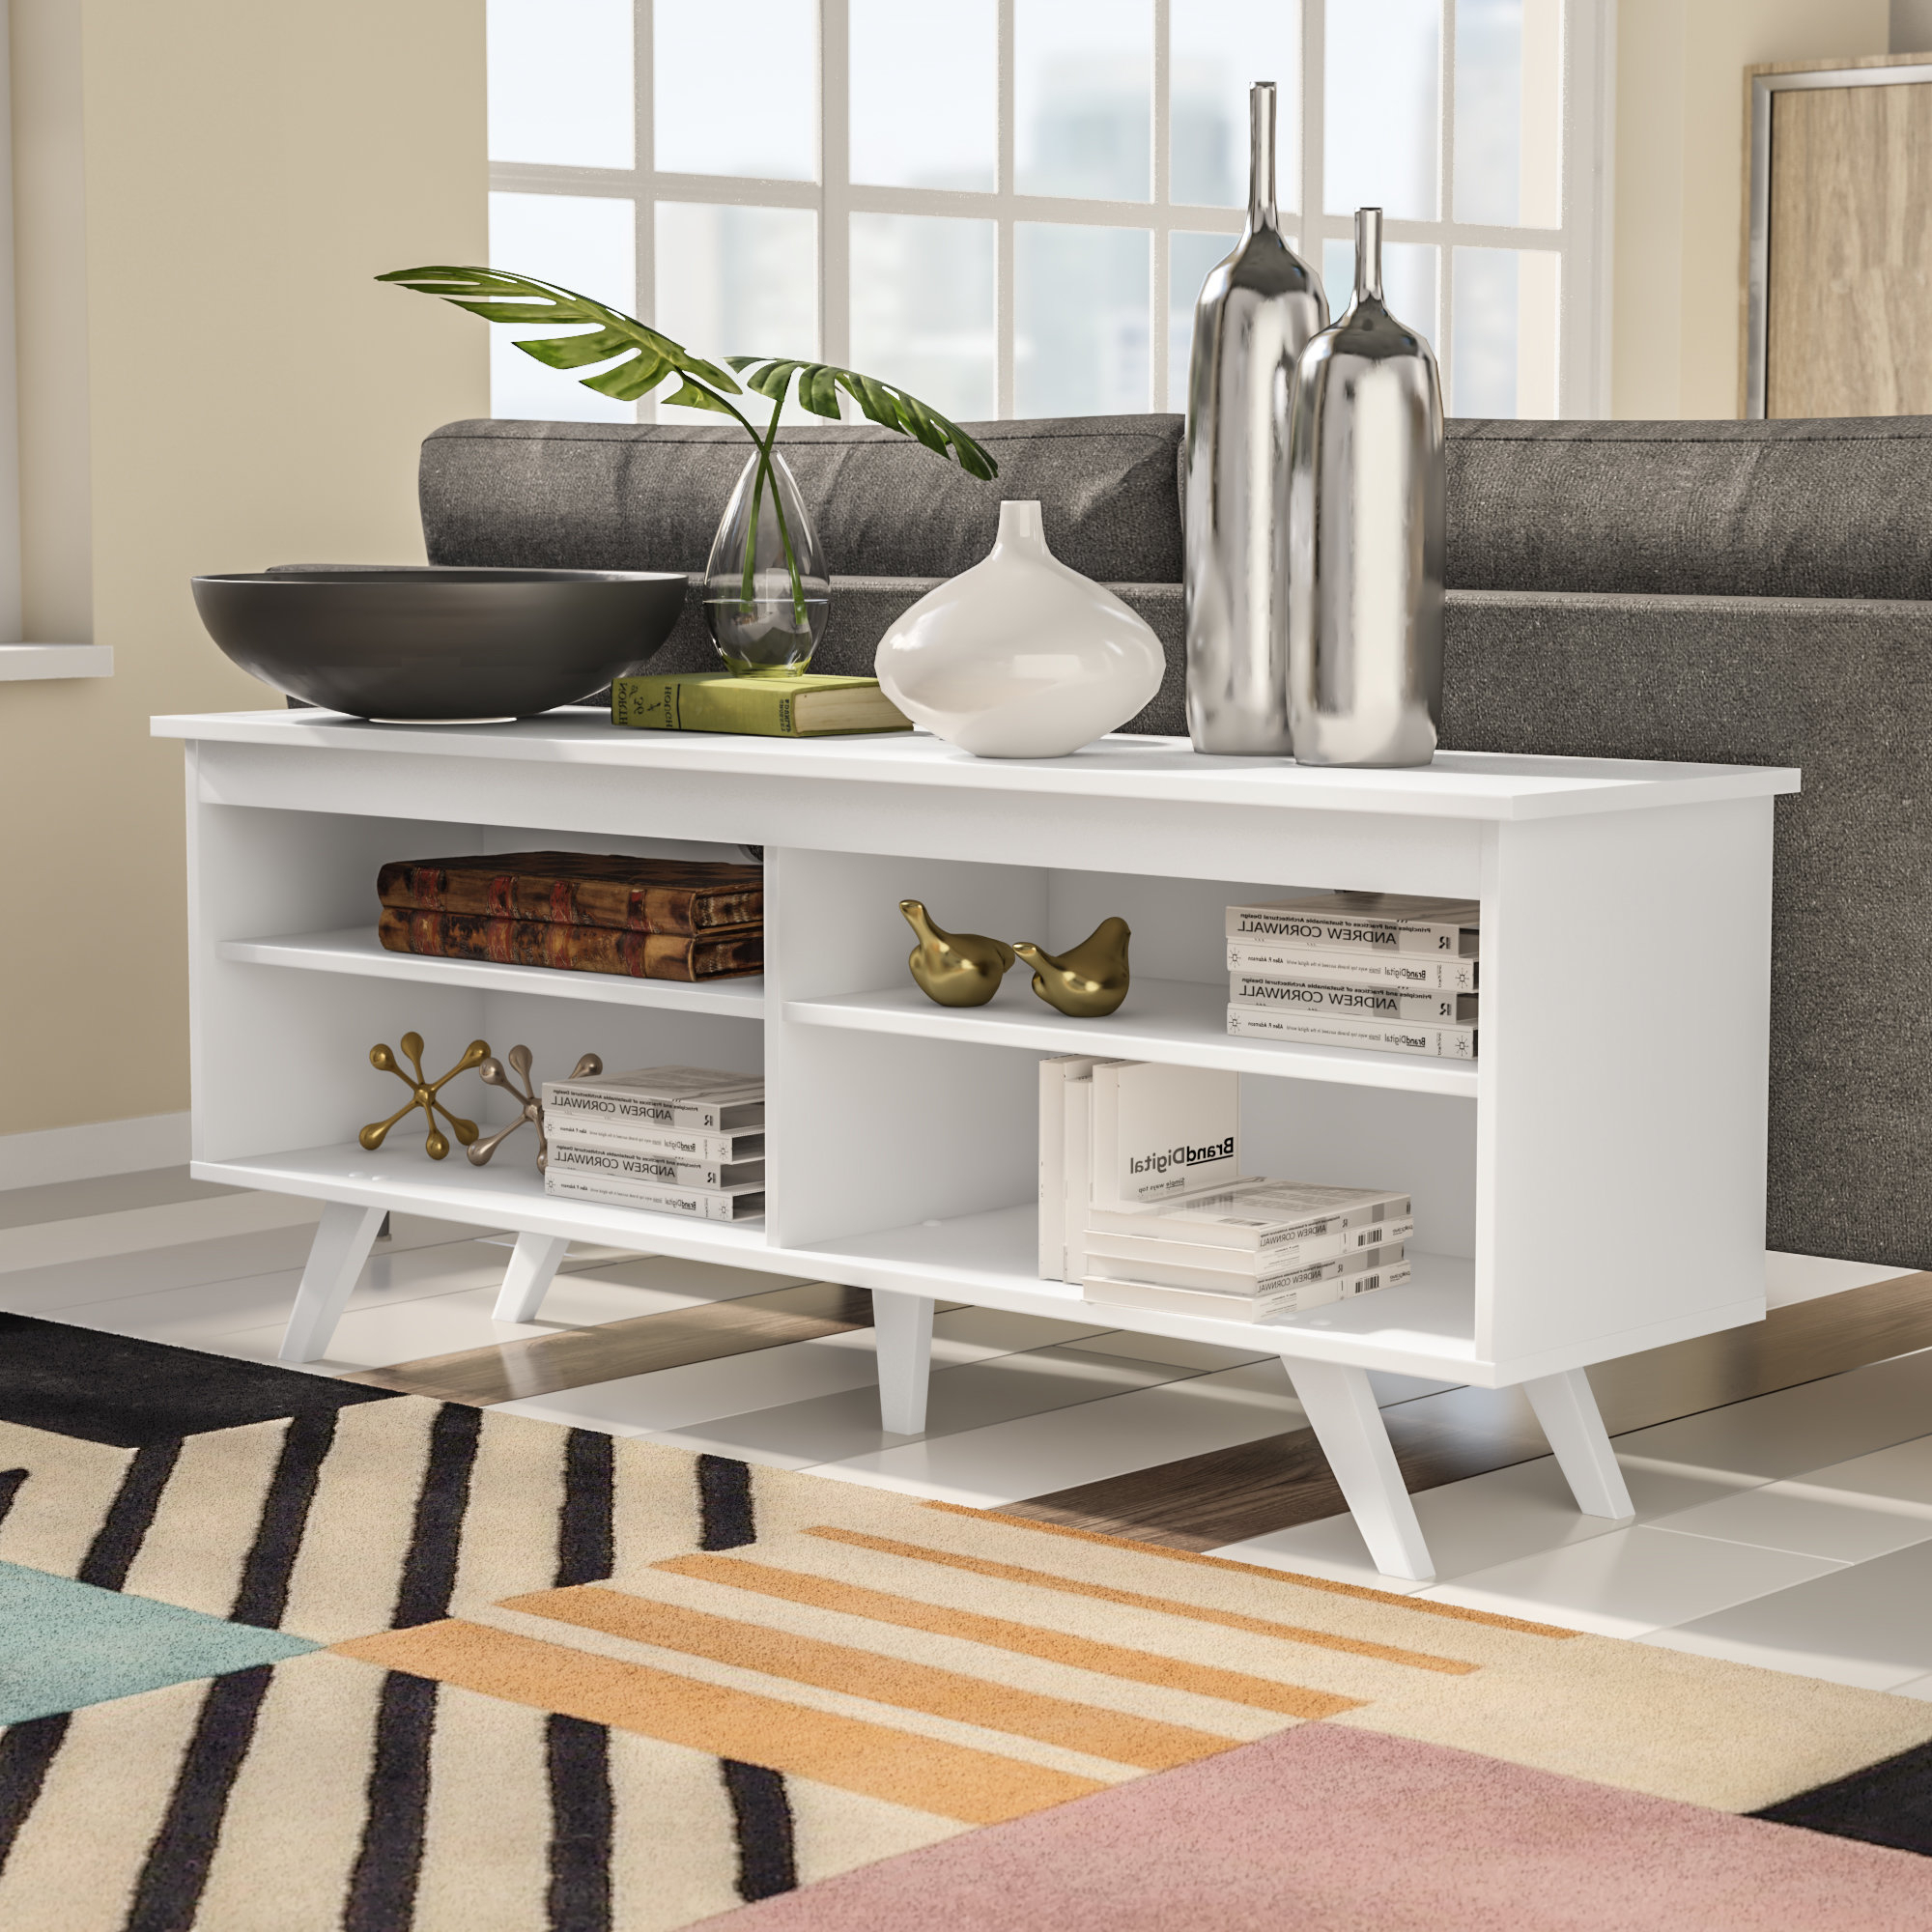 Wayfair Intended For Most Recent Ducar 74 Inch Tv Stands (View 14 of 20)